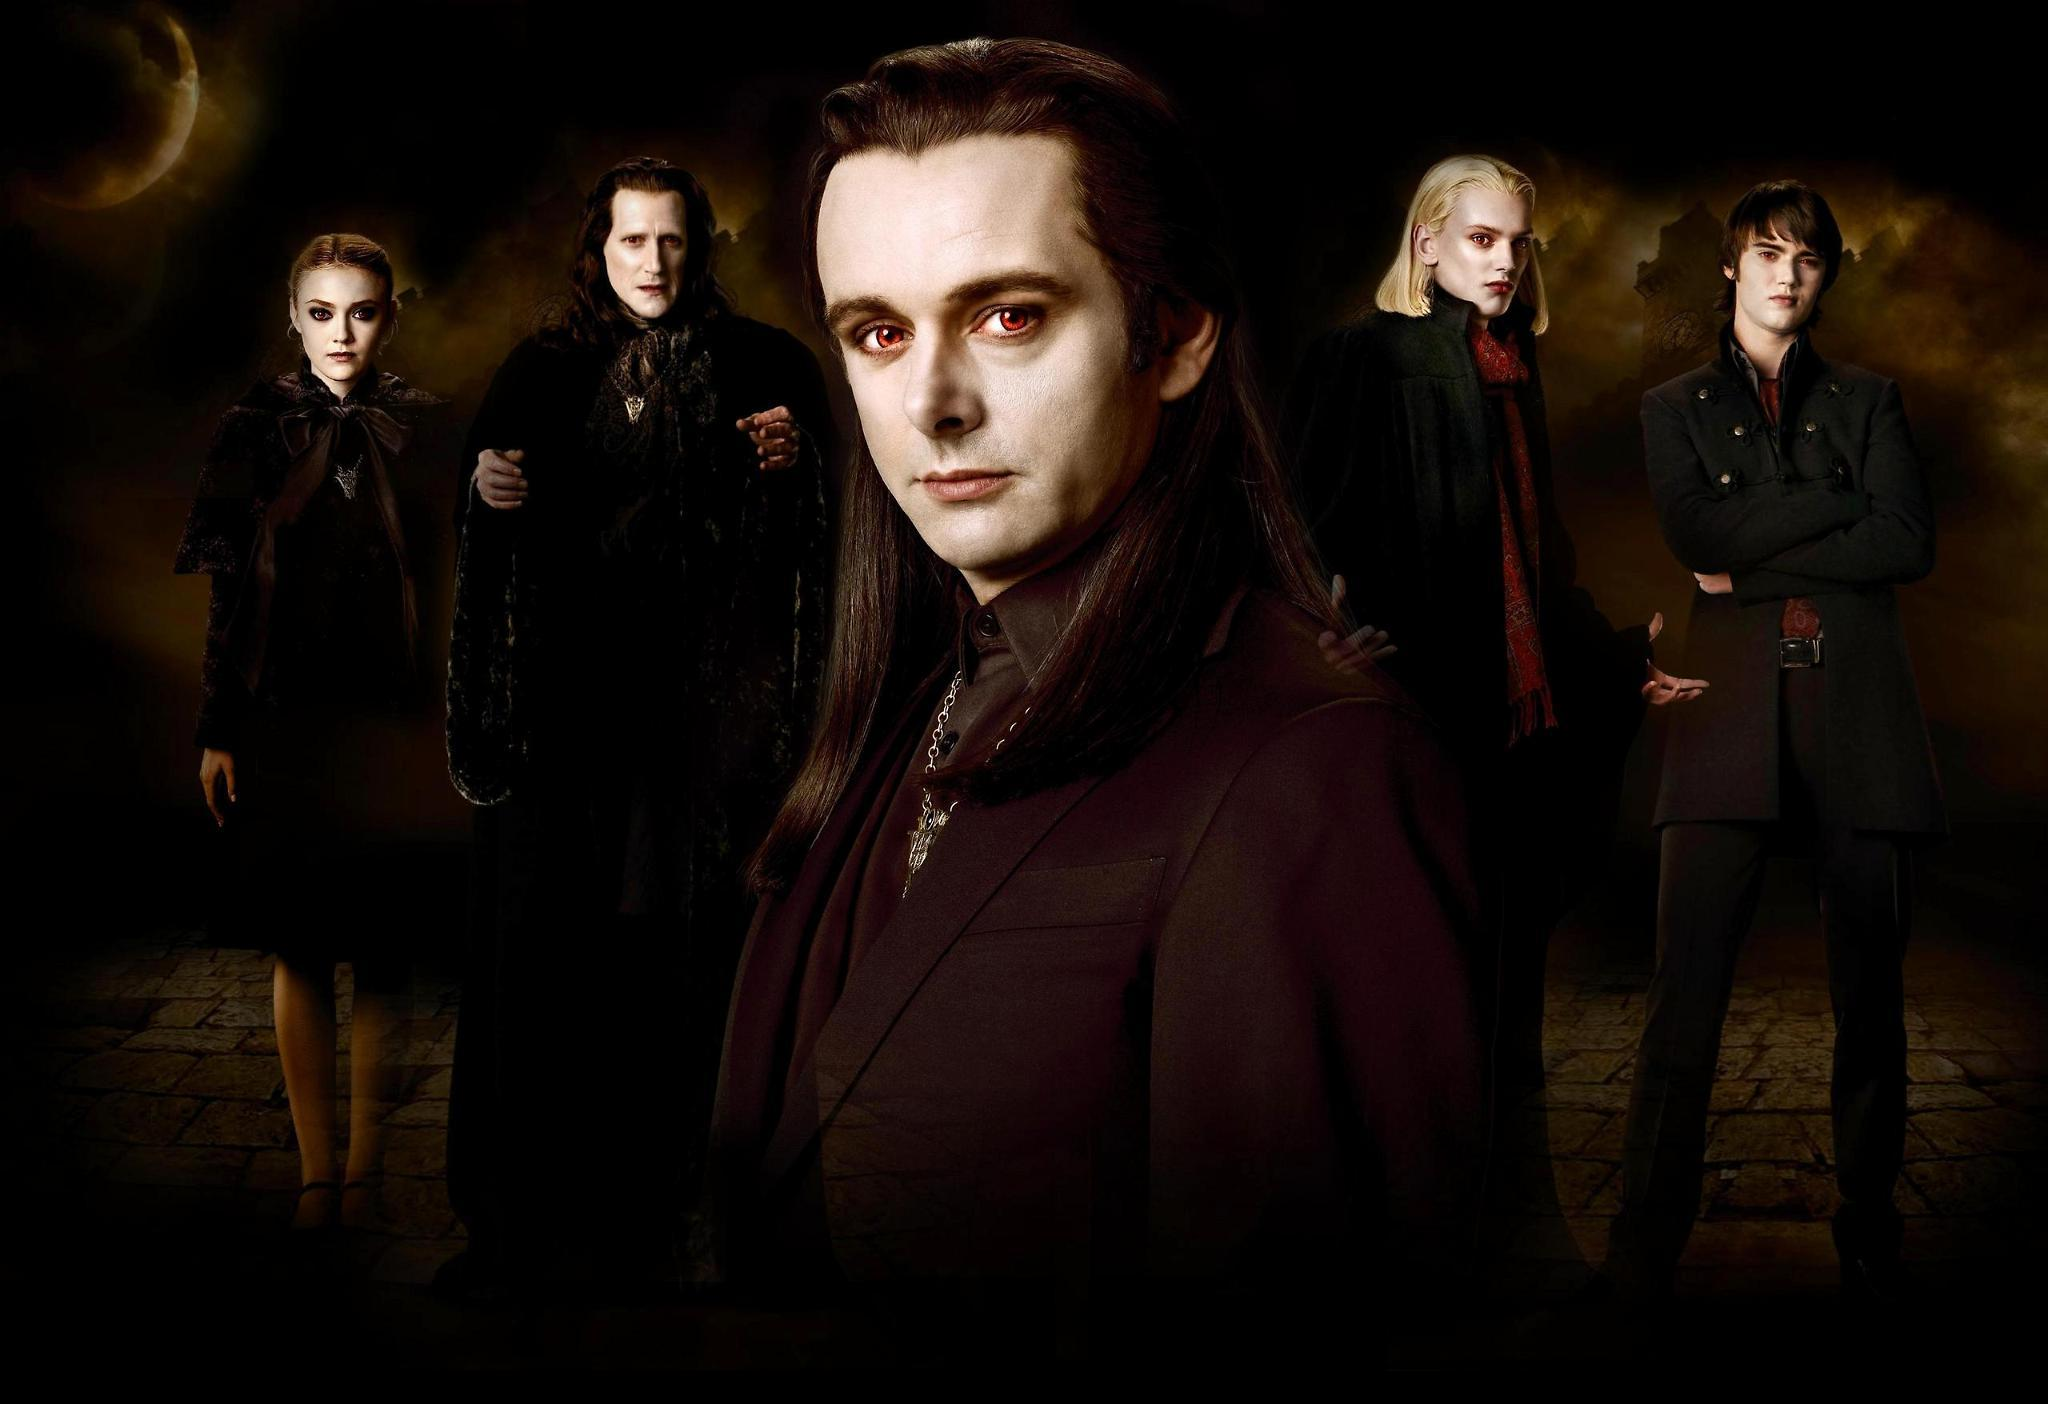 Who are the Volturi family members??